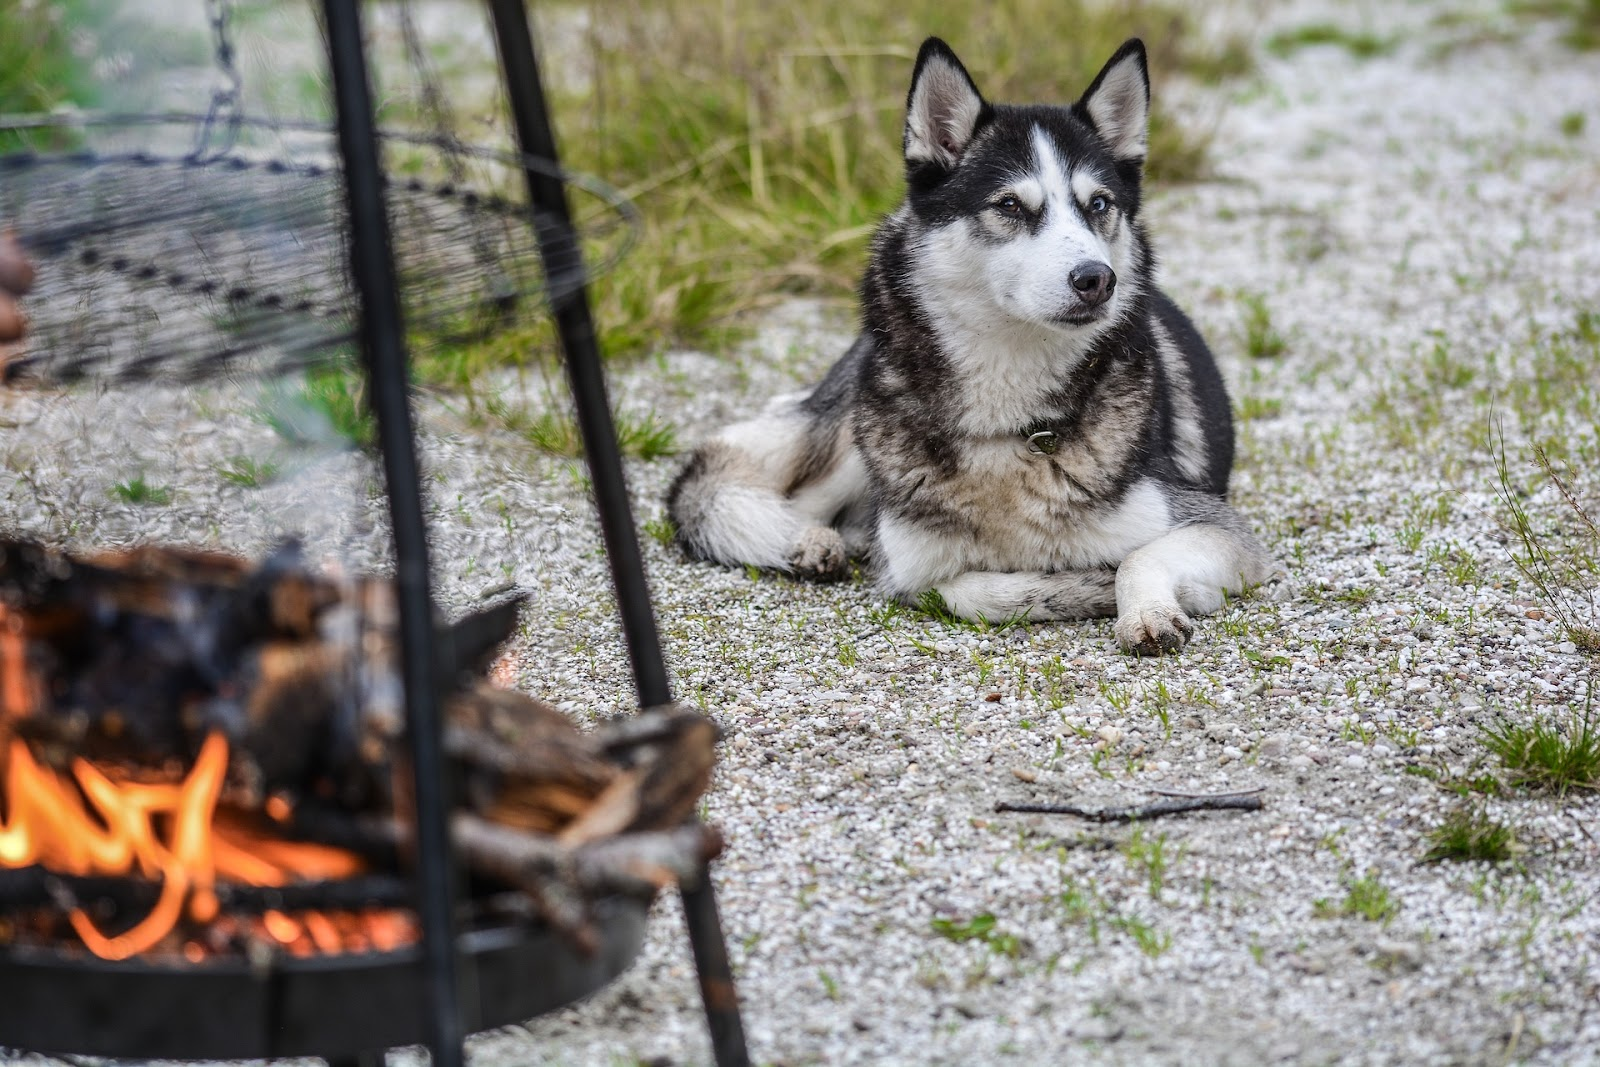 dog laying on the ground near a barbecue firepit